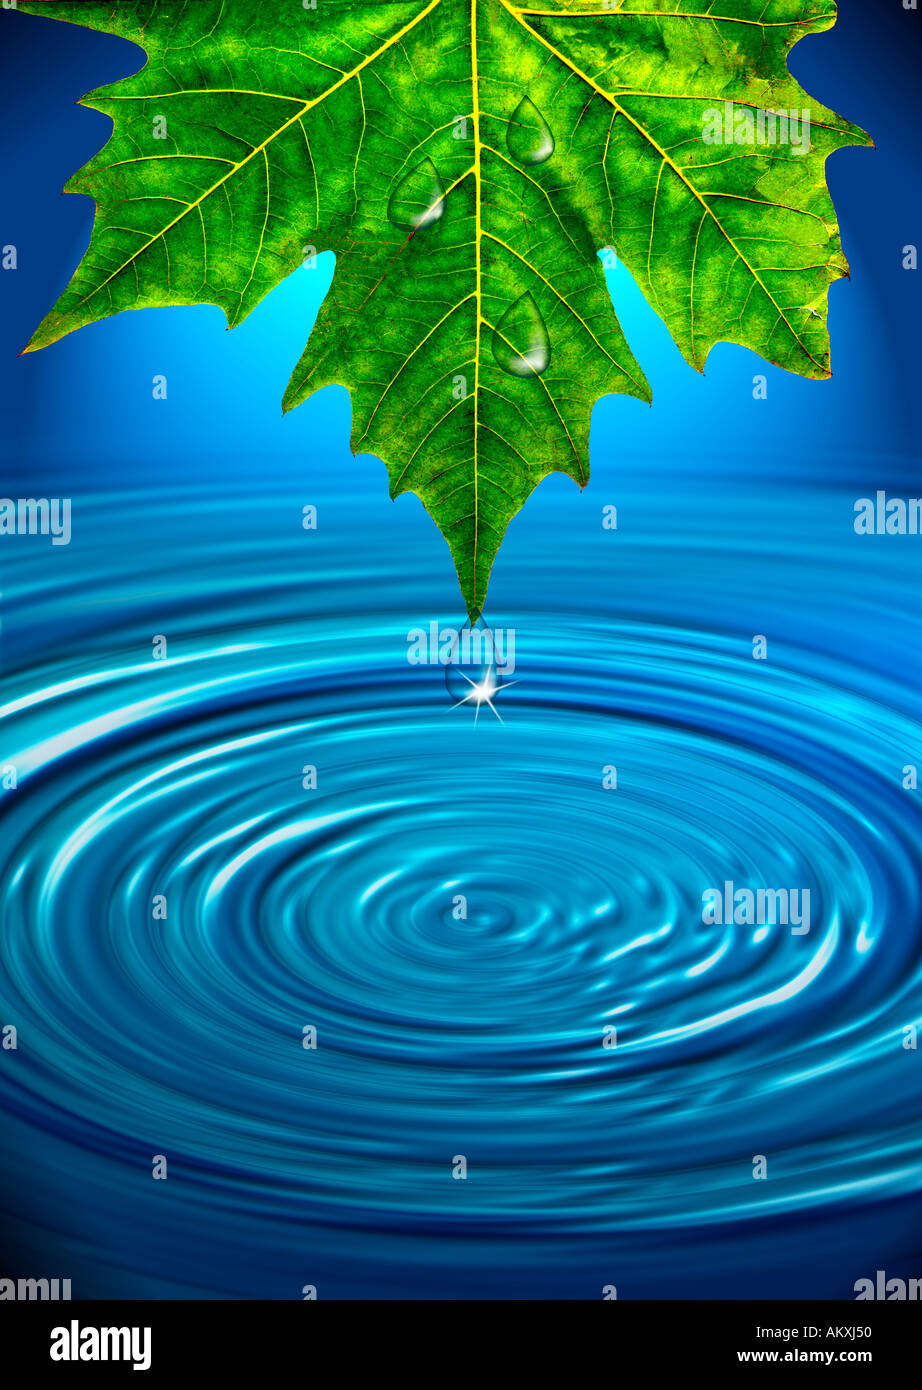 single leaf droplet of water pond water ripples rippling photo illustration concept - Stock Image